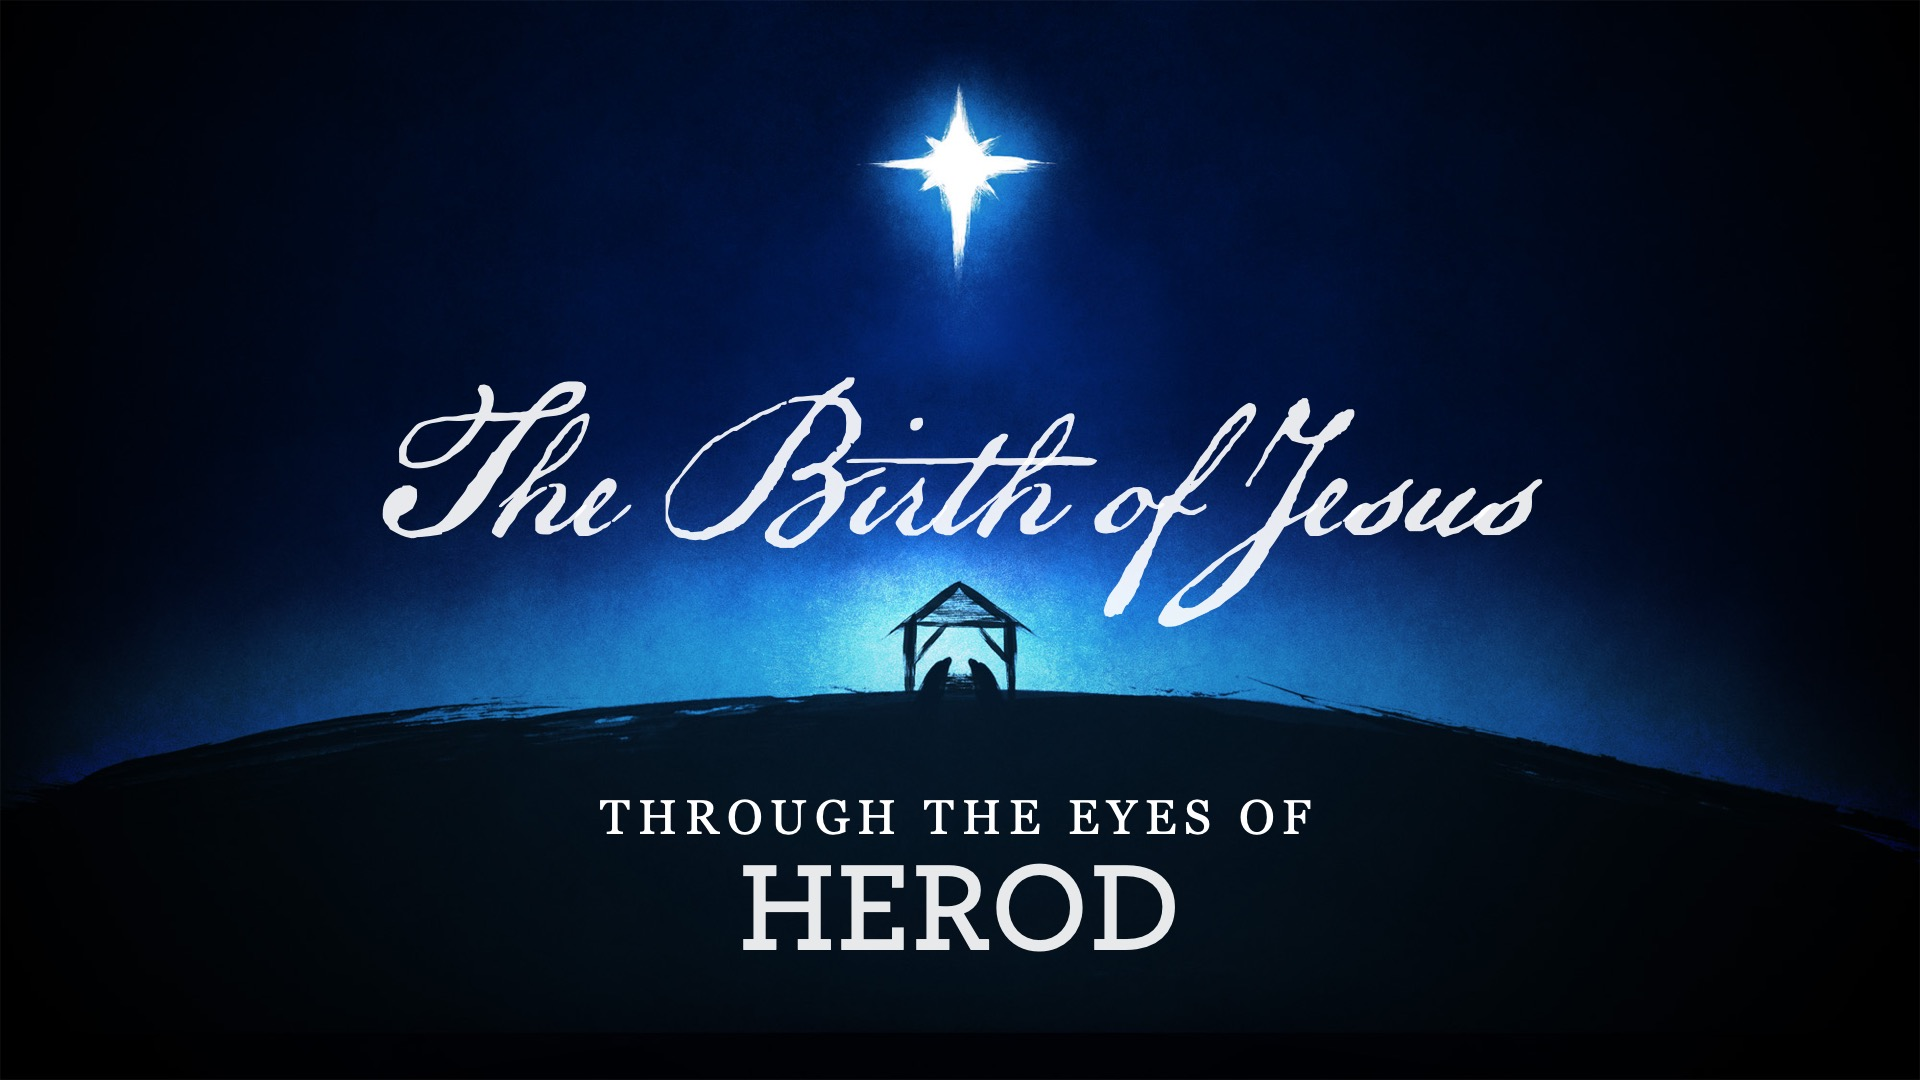 The Birth of Jesus Through the Eyes of Herod